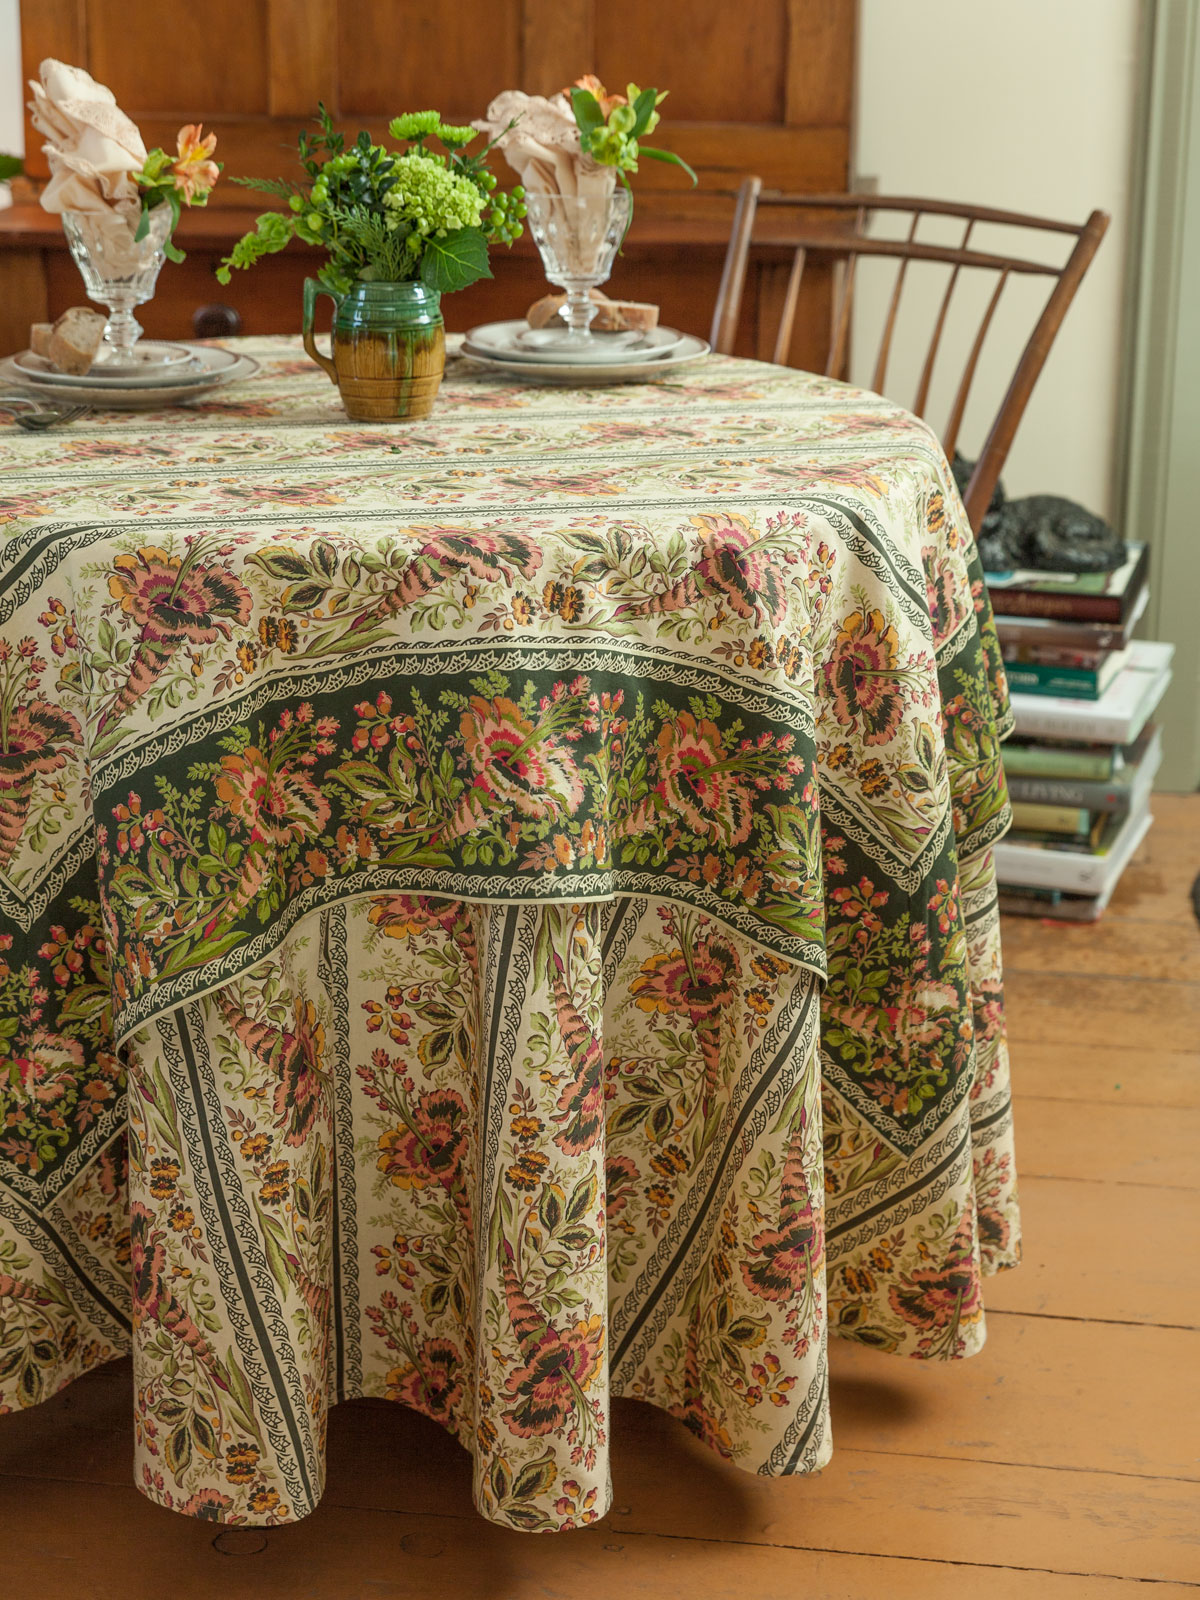 Cornucopia Tablecloth April S Attic Sale Linens